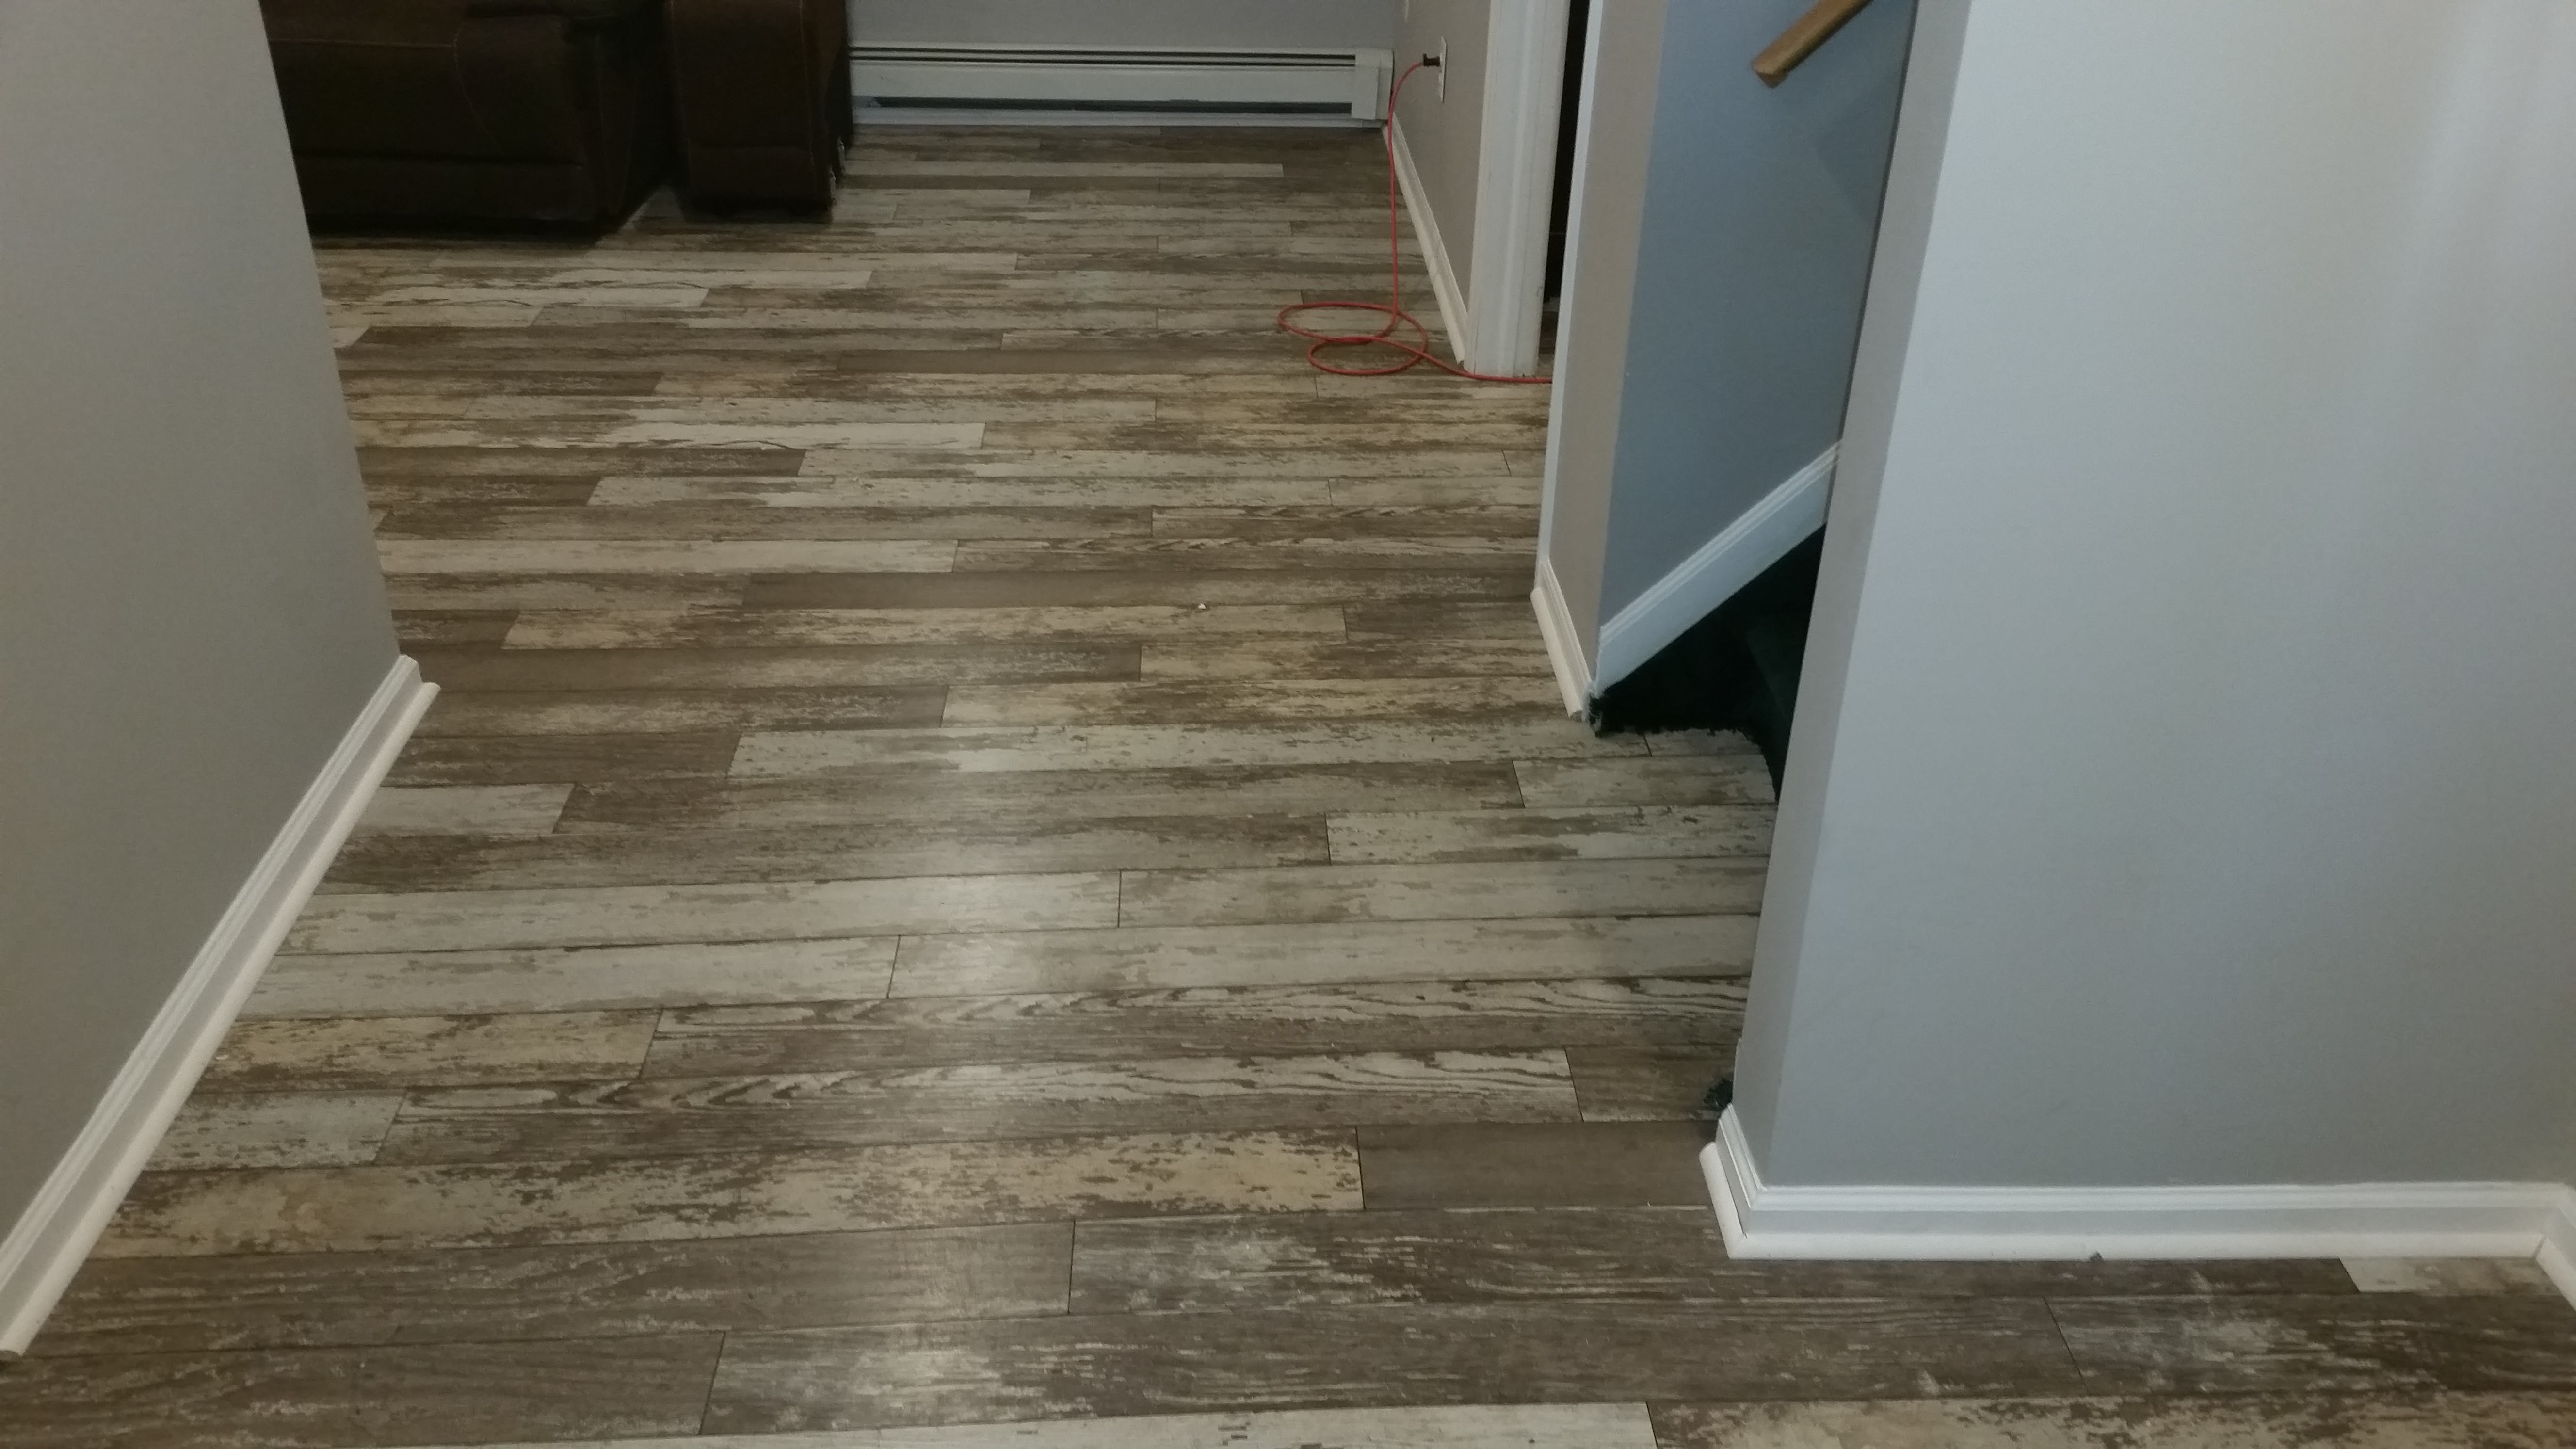 Hardwood floor installed by A&M Home Improvements in Westfield, New Jersey